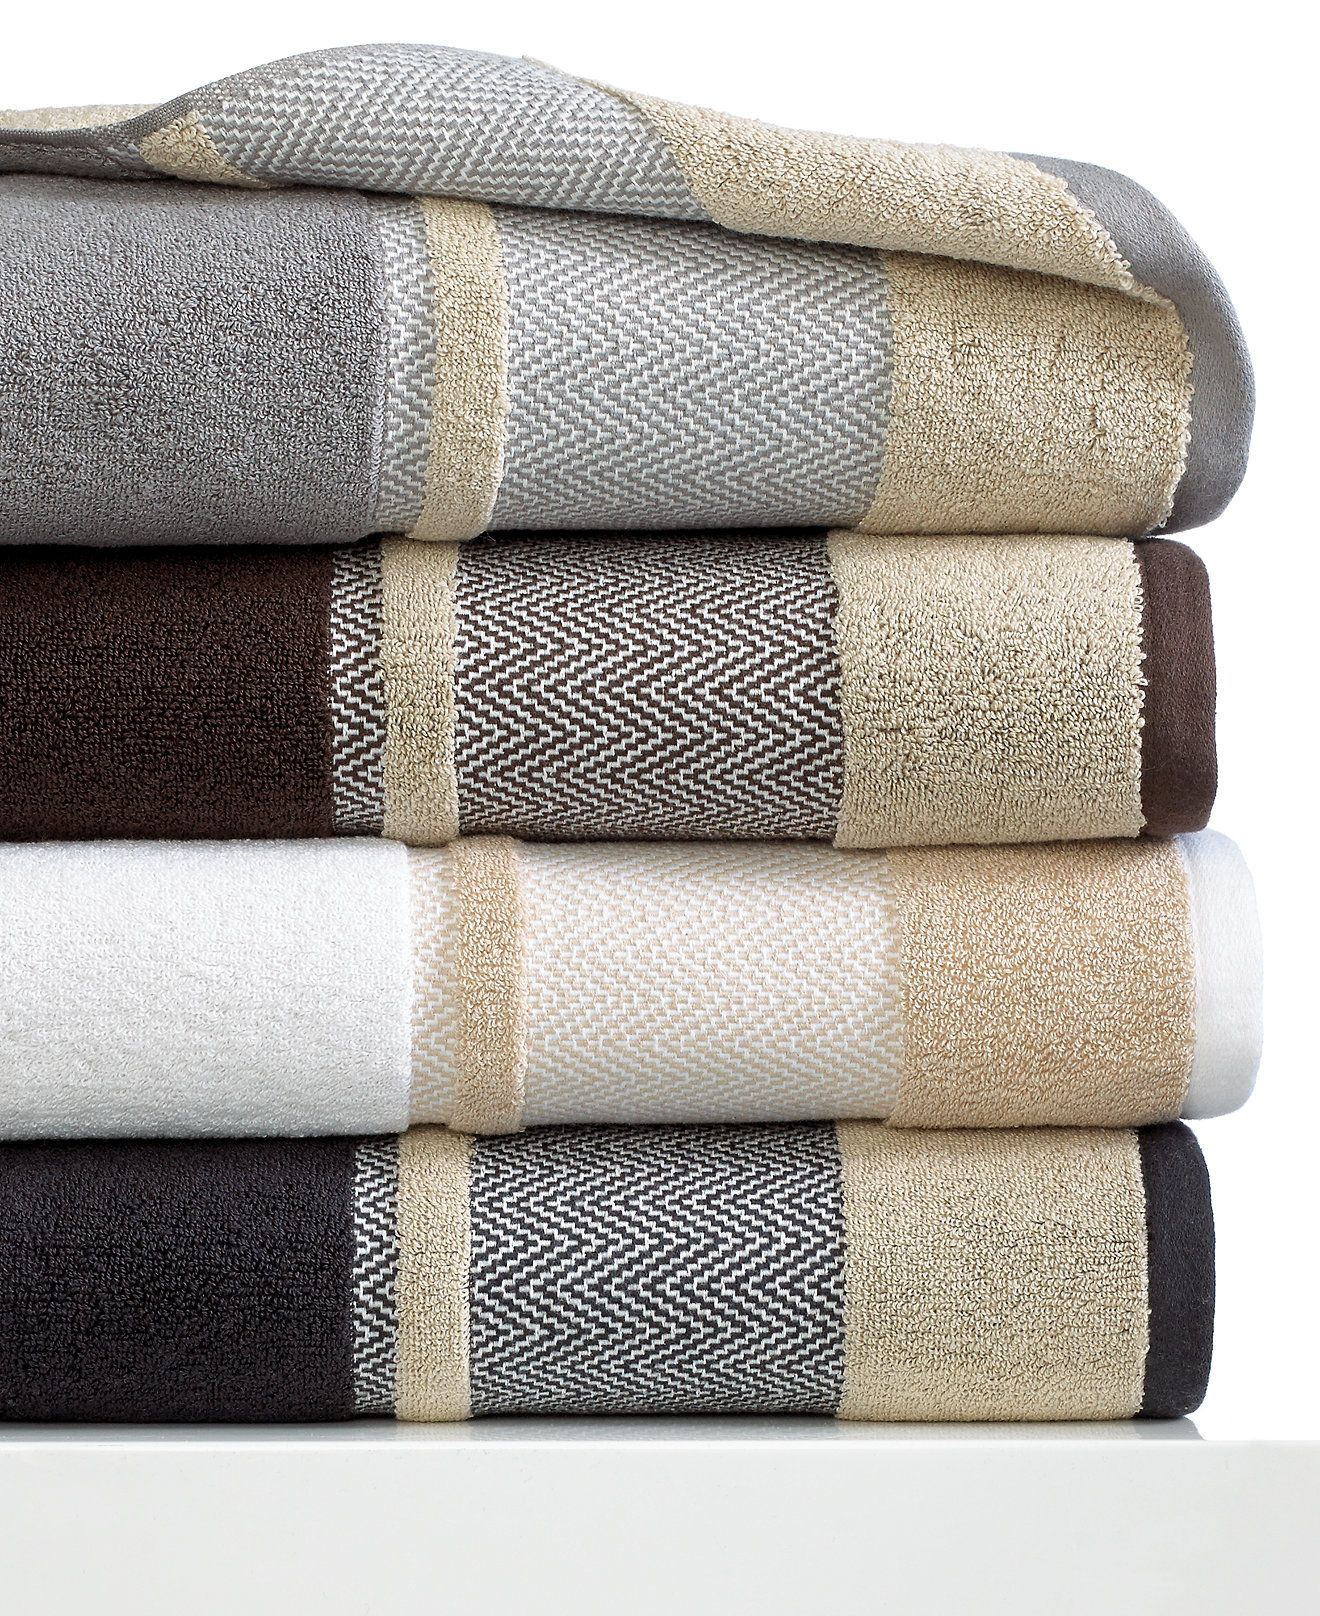 Kassatex Bath Towels Saville 18 Quot X 28 Quot Hand Towel Bath